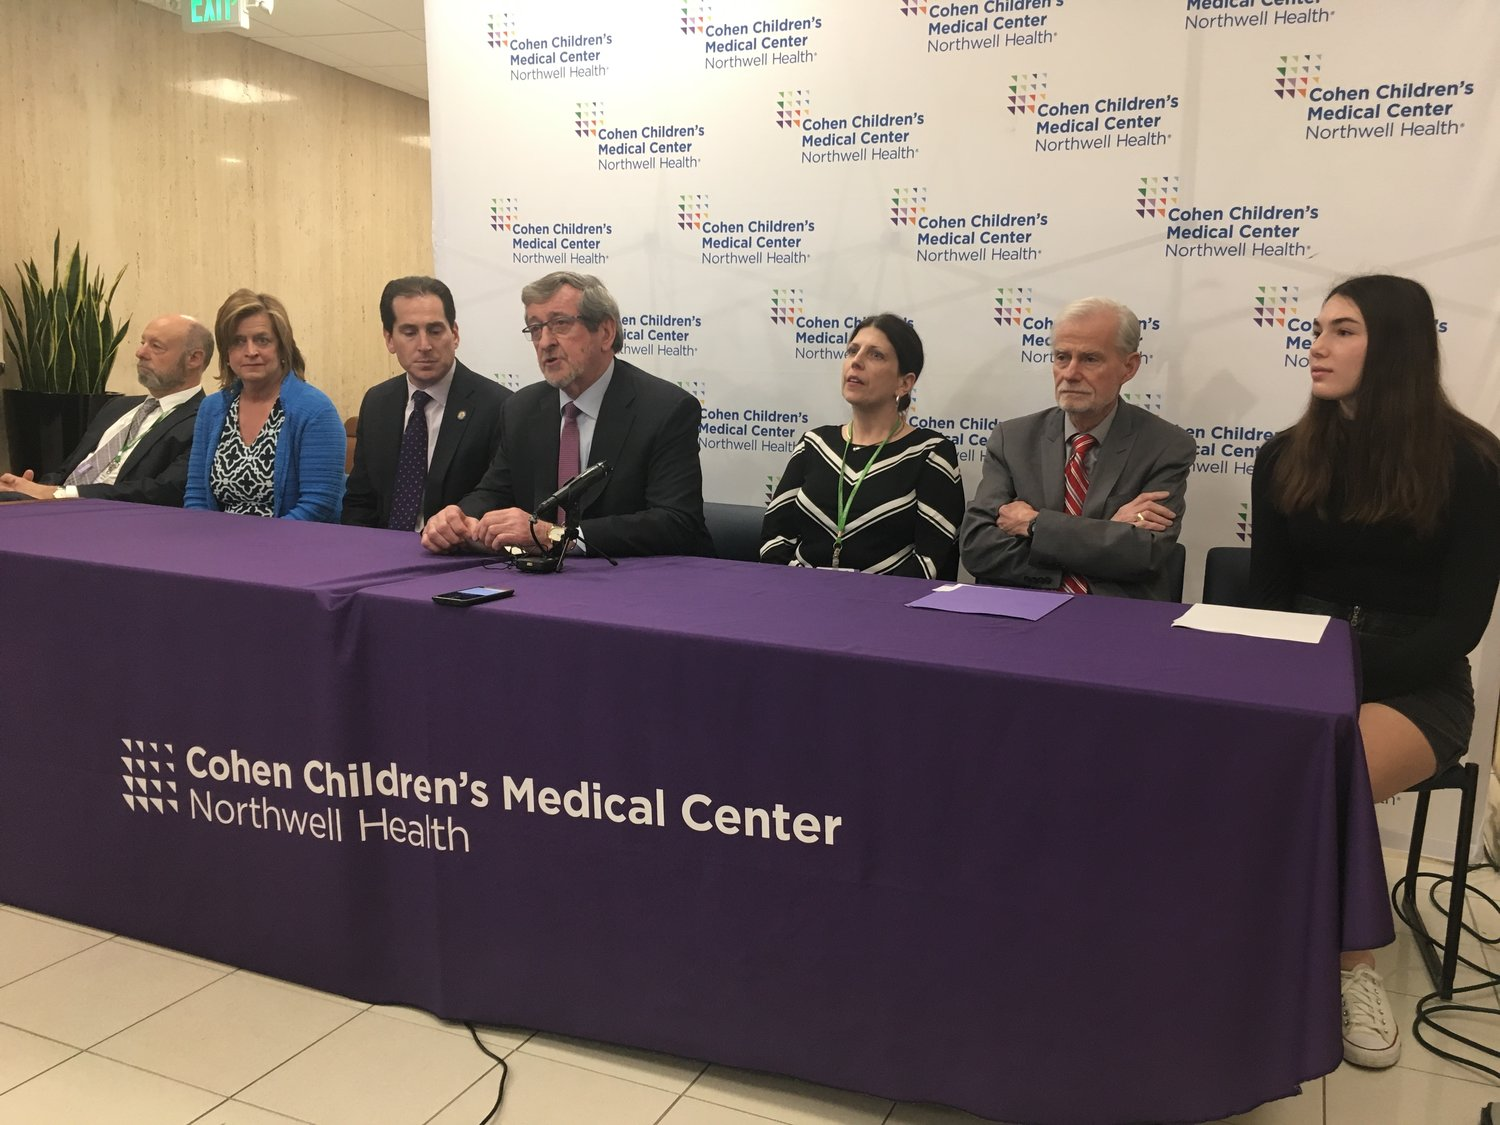 Michael Dowling, president and chief executive of Northwell Health, center, spoke at the opening of the Behavioral Health Center